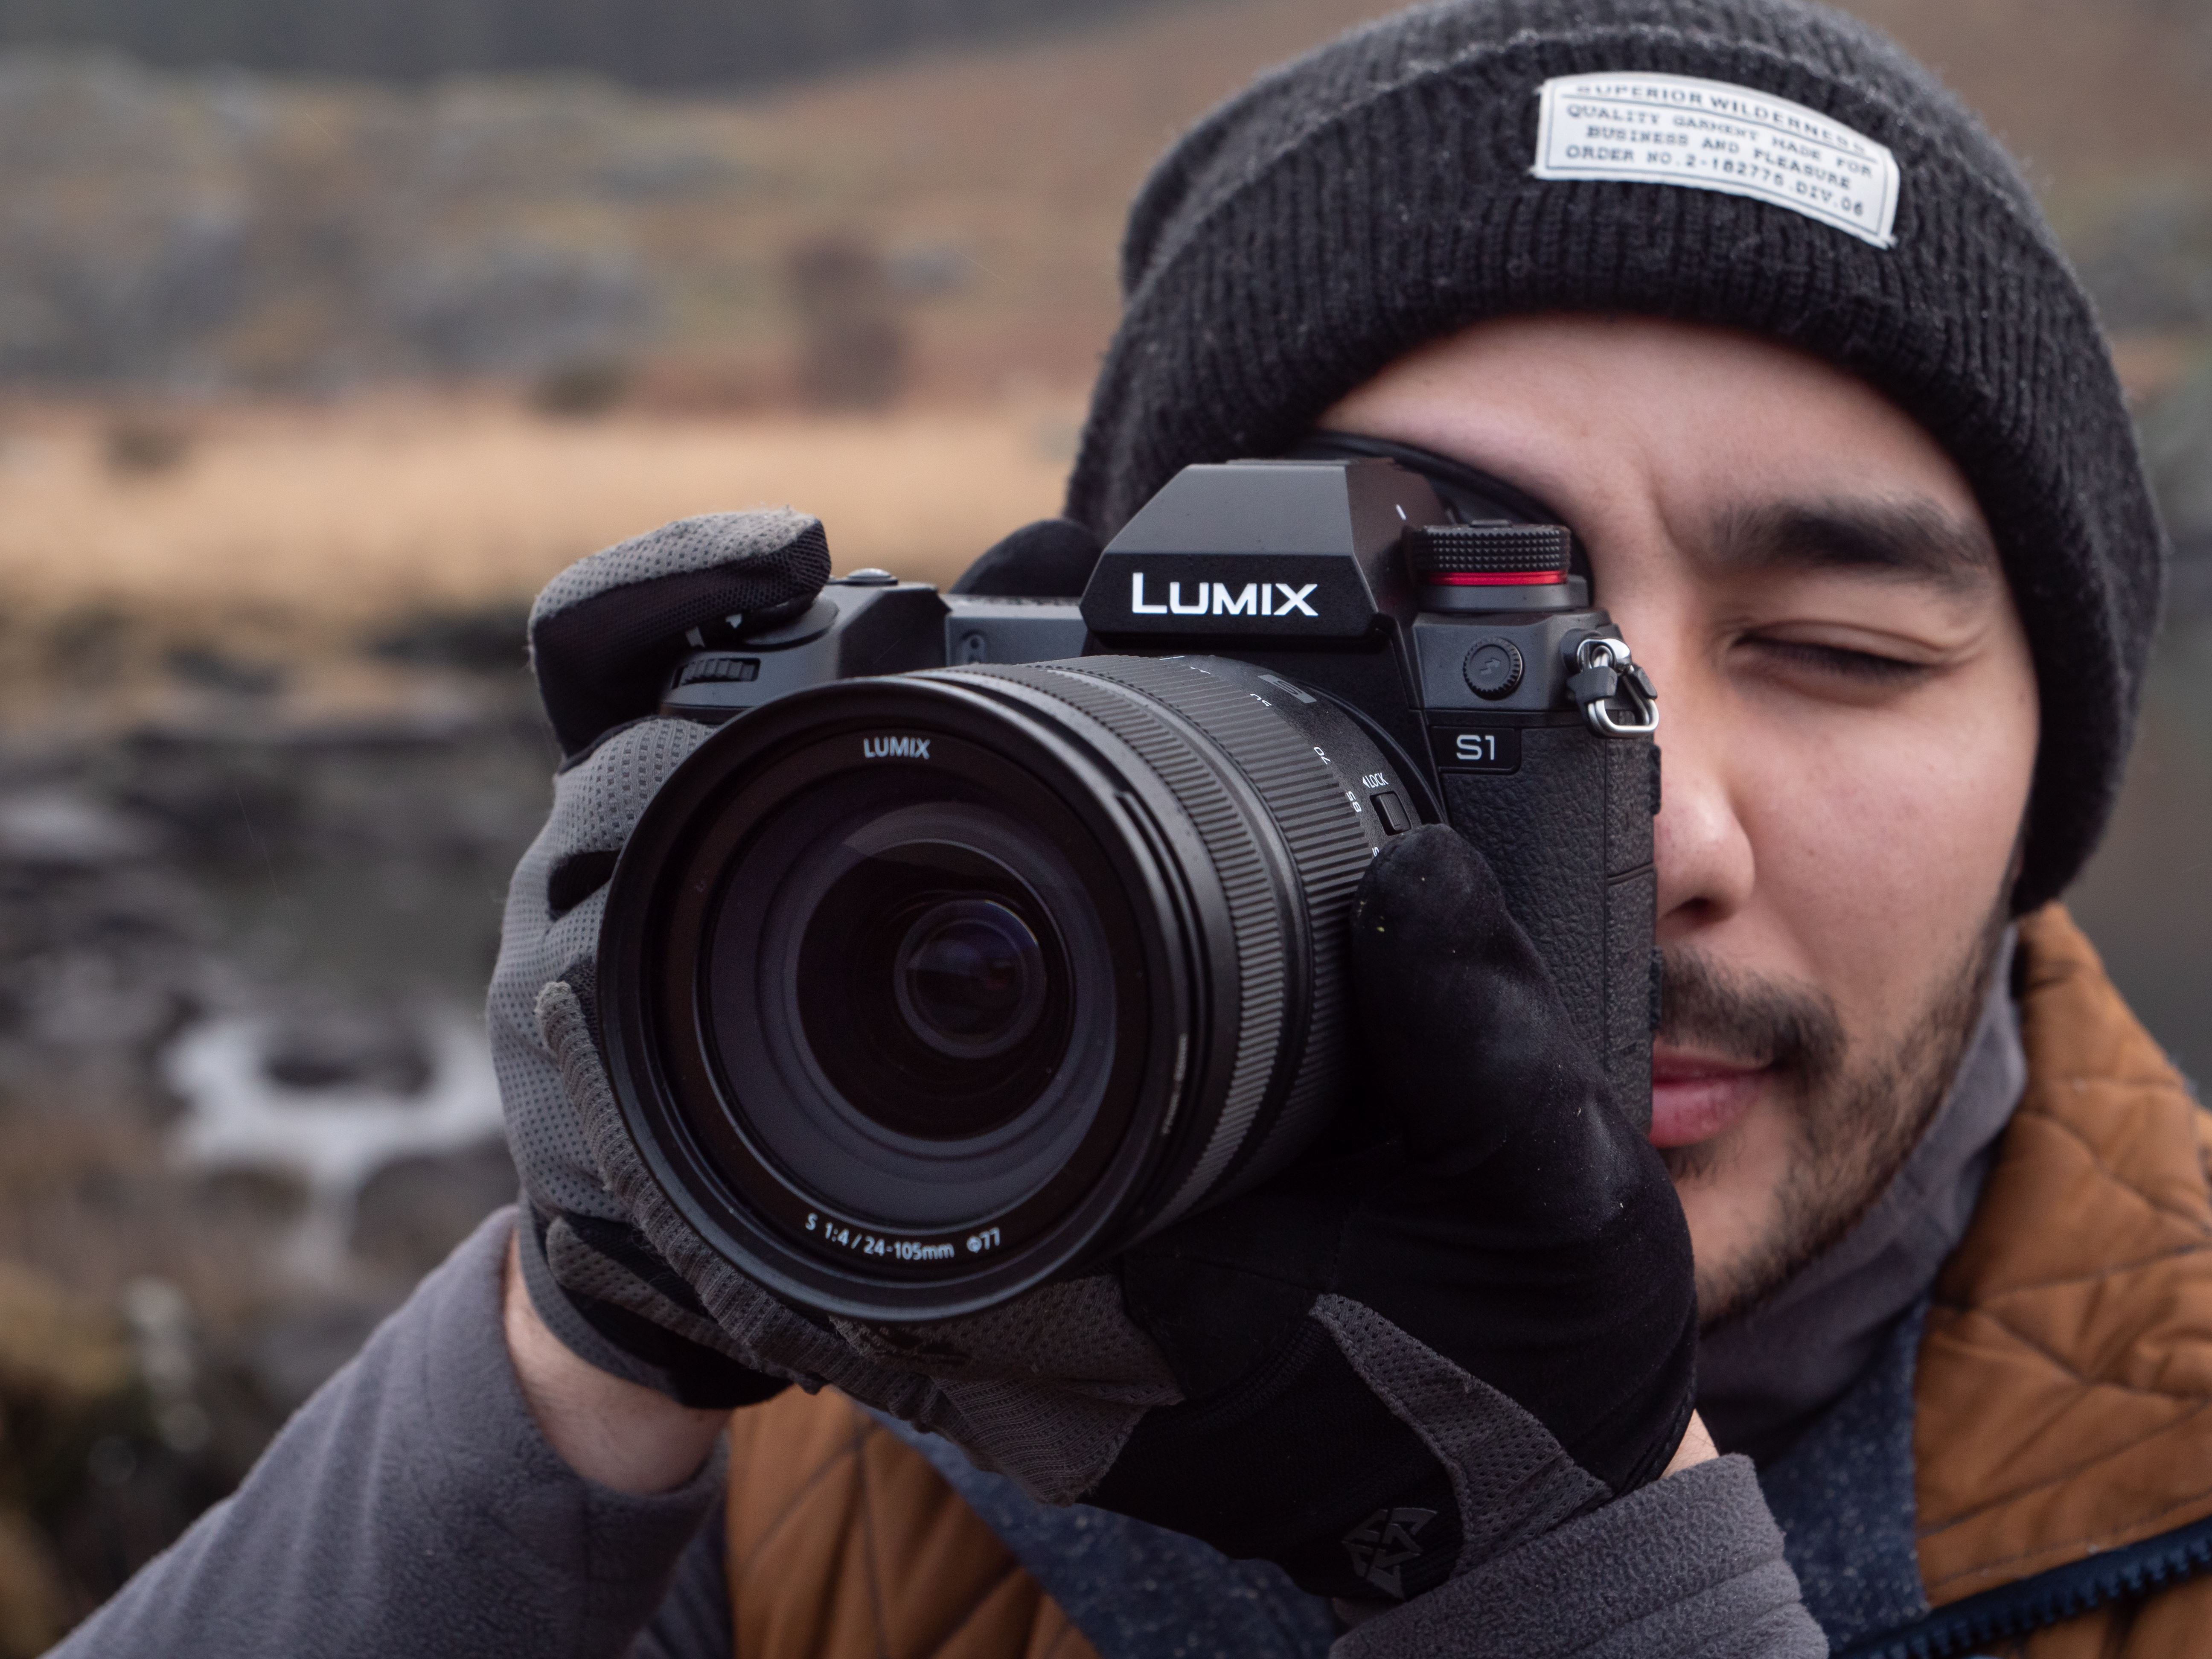 Shooting Video On The Panasonic Lumix S1 Real World Review Wex Photo Video